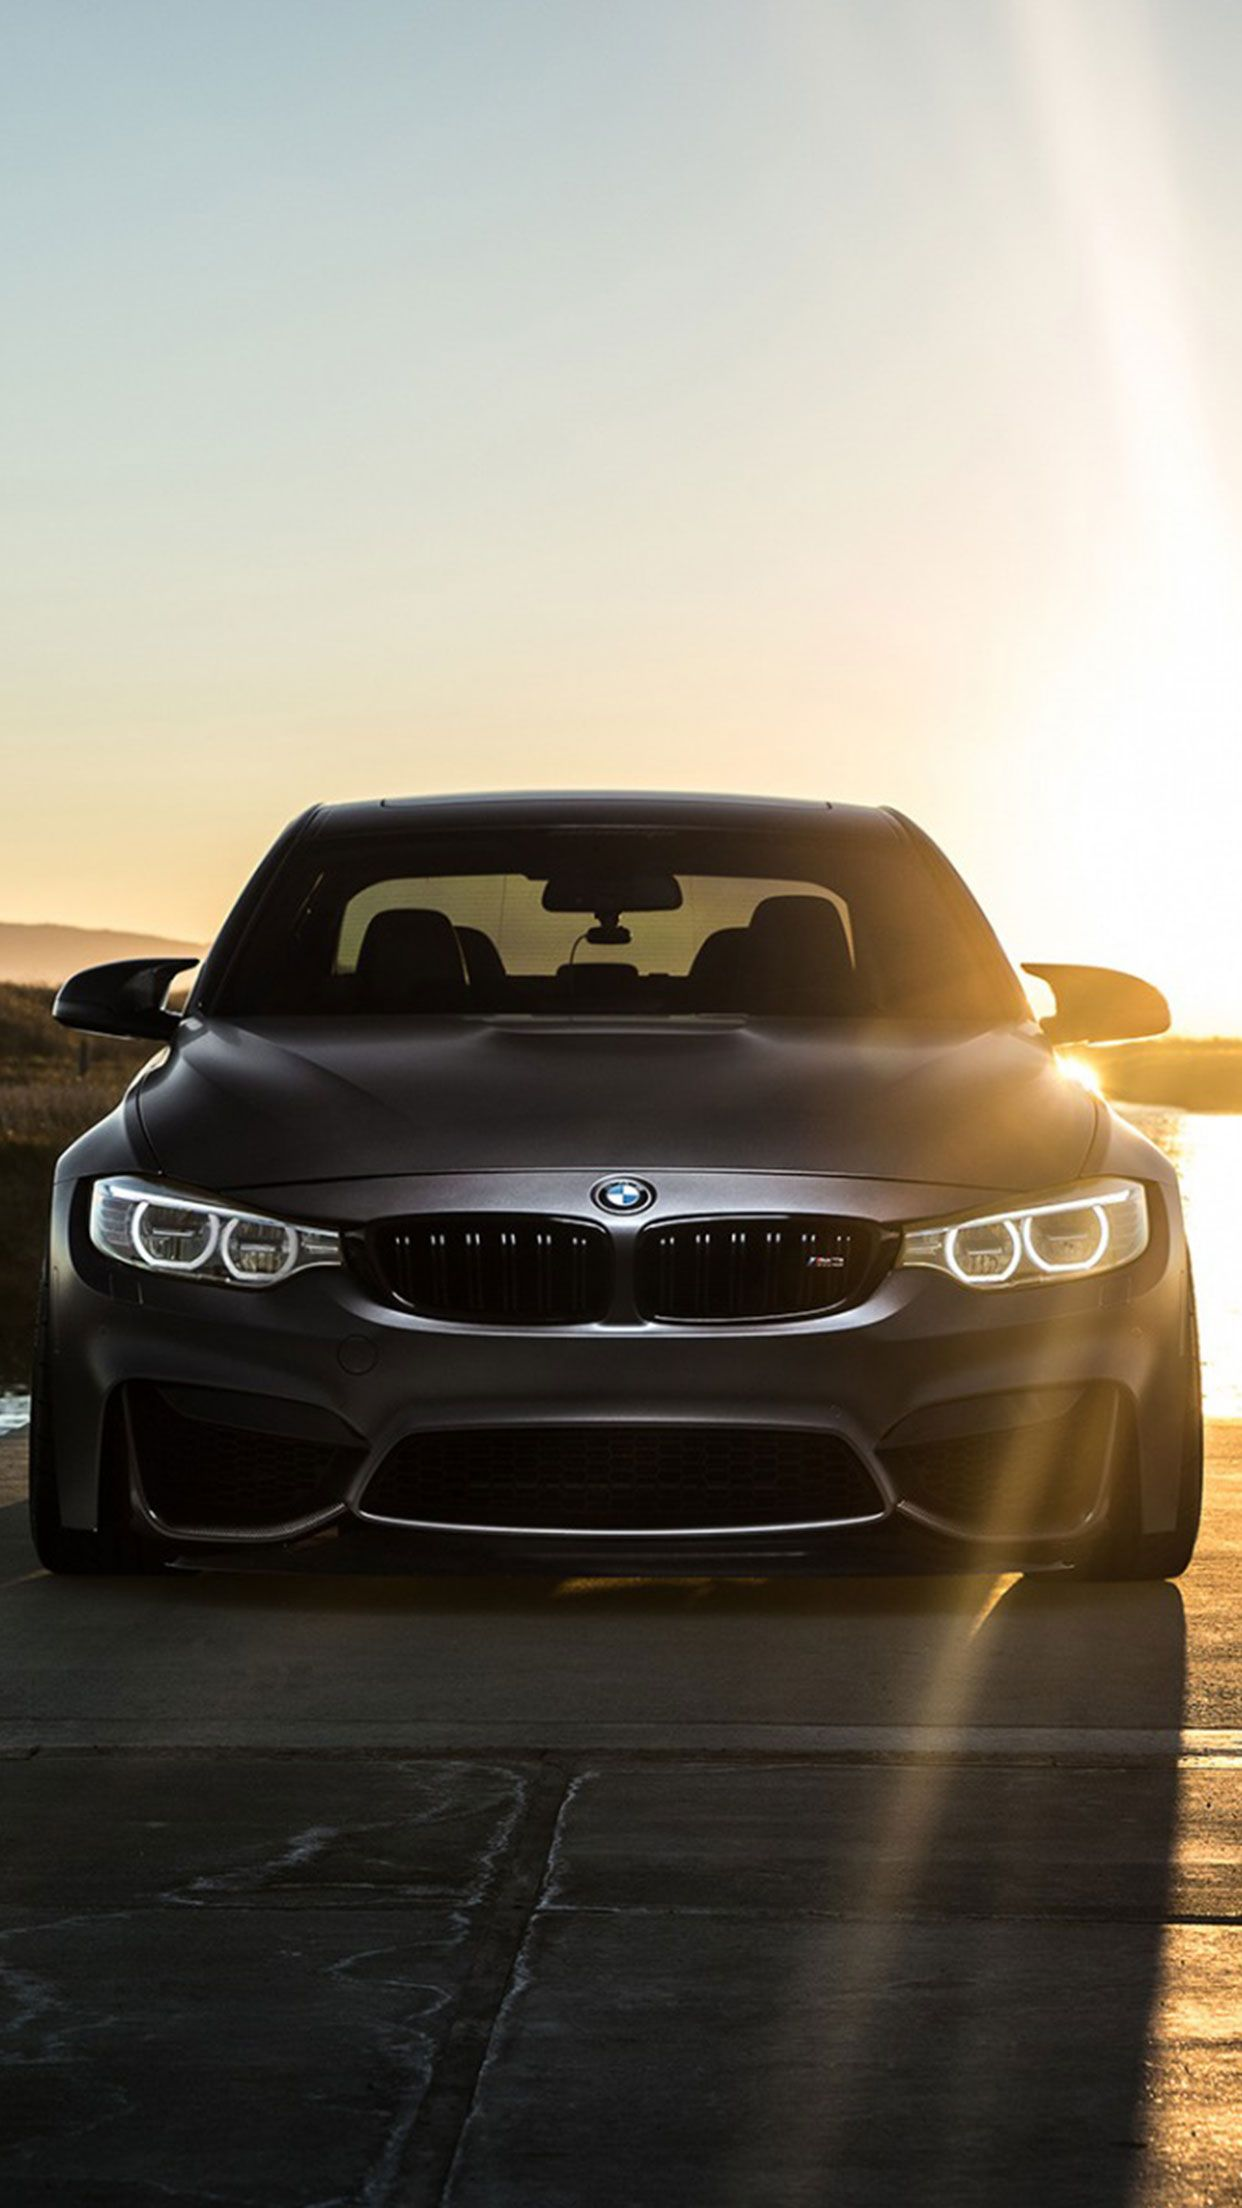 Grey Bmw Car Wallpaper For Iphone And Android Bmw Car At